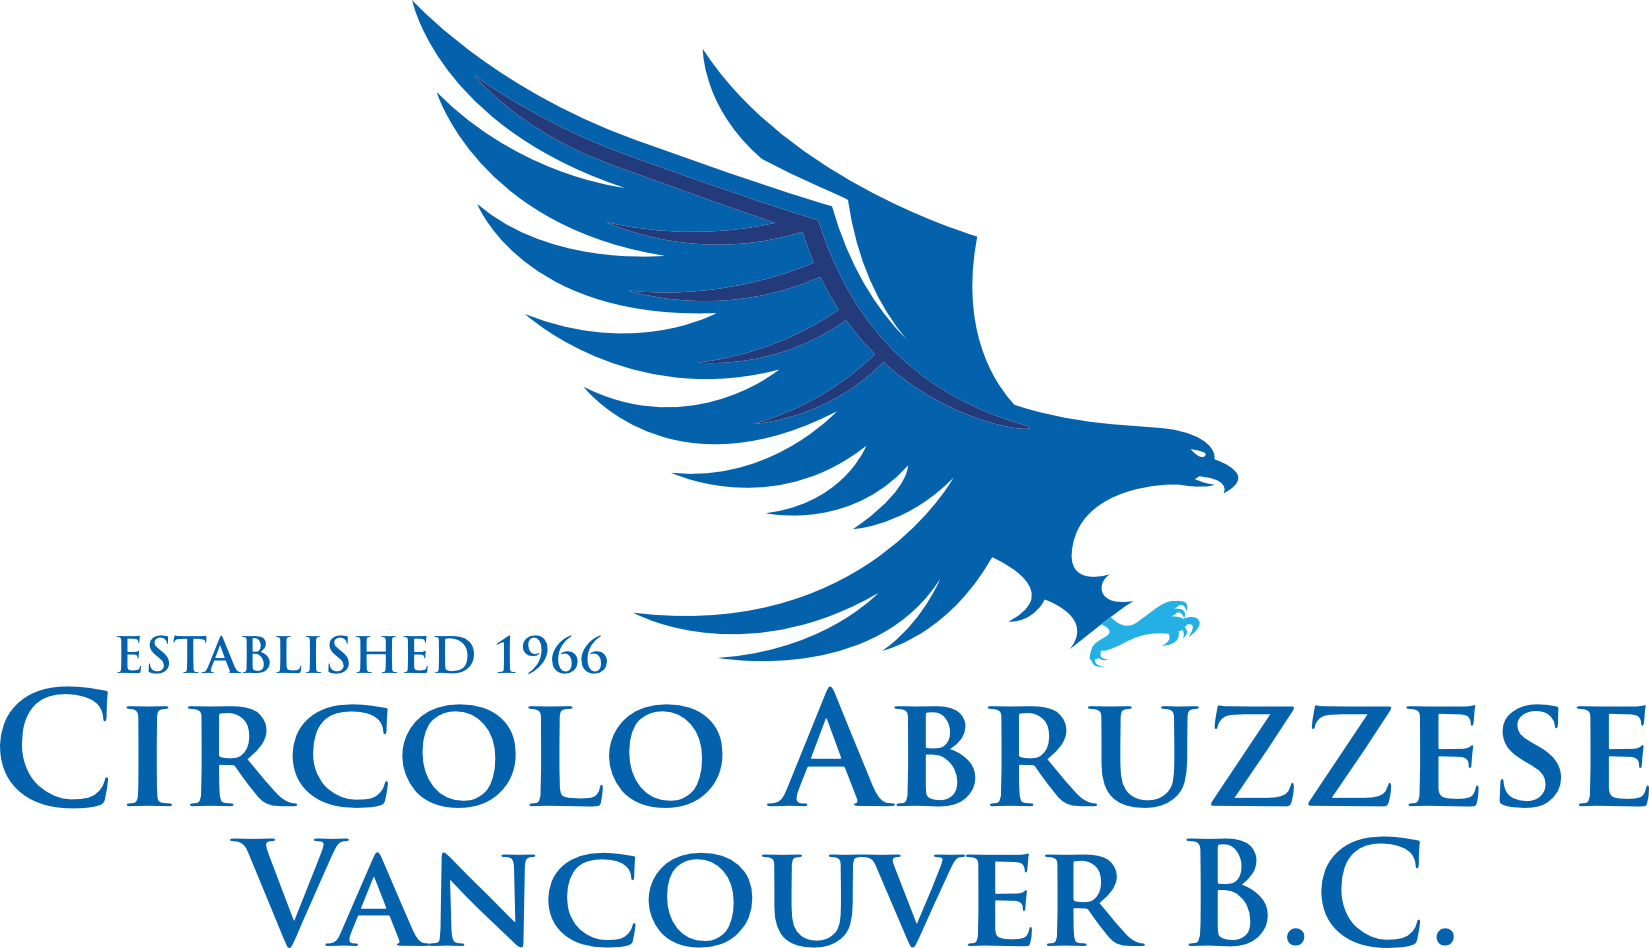 Circolo Abruzzese Established in 1966 in Vancouver BC